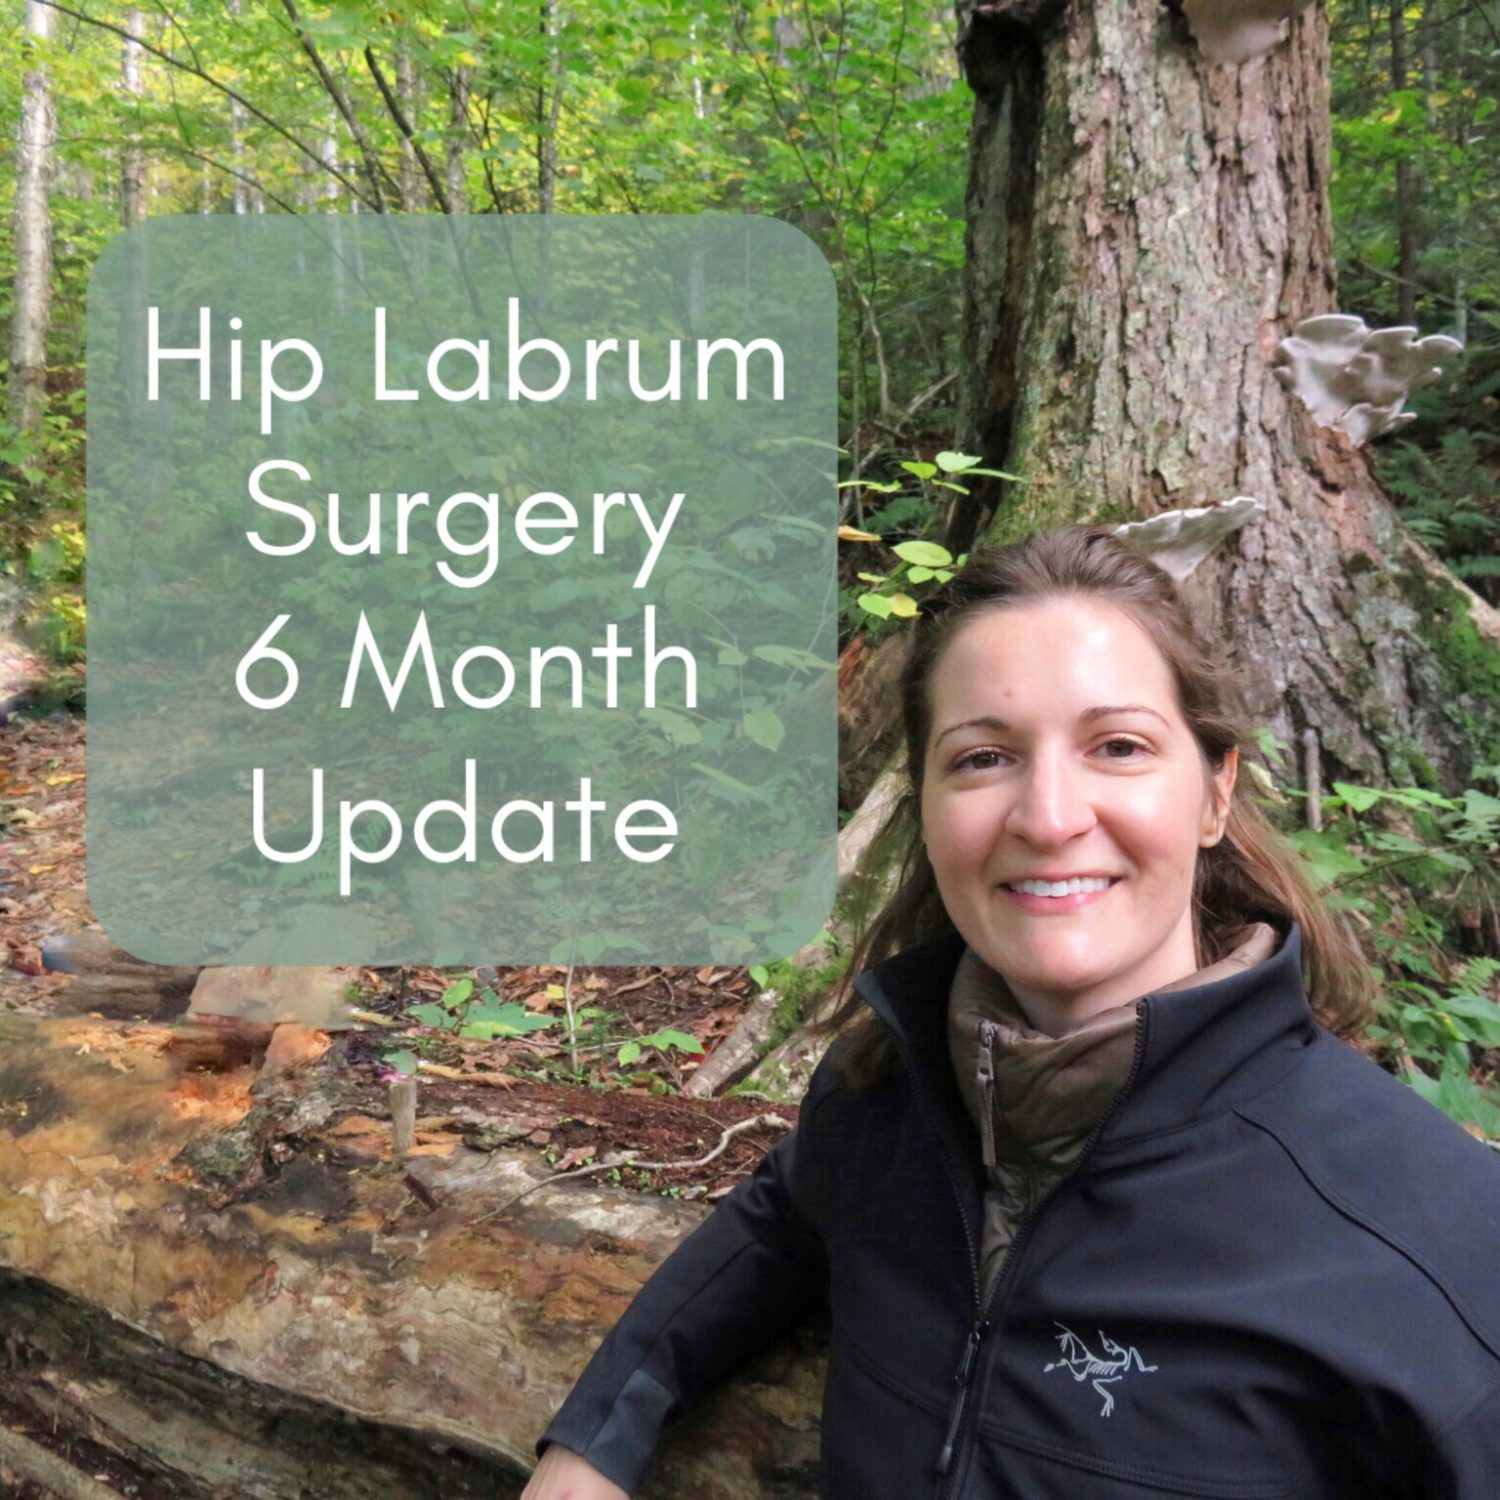 Hip Labrum Surgery: 6 Month Update After Hip Labral Tear Surgery